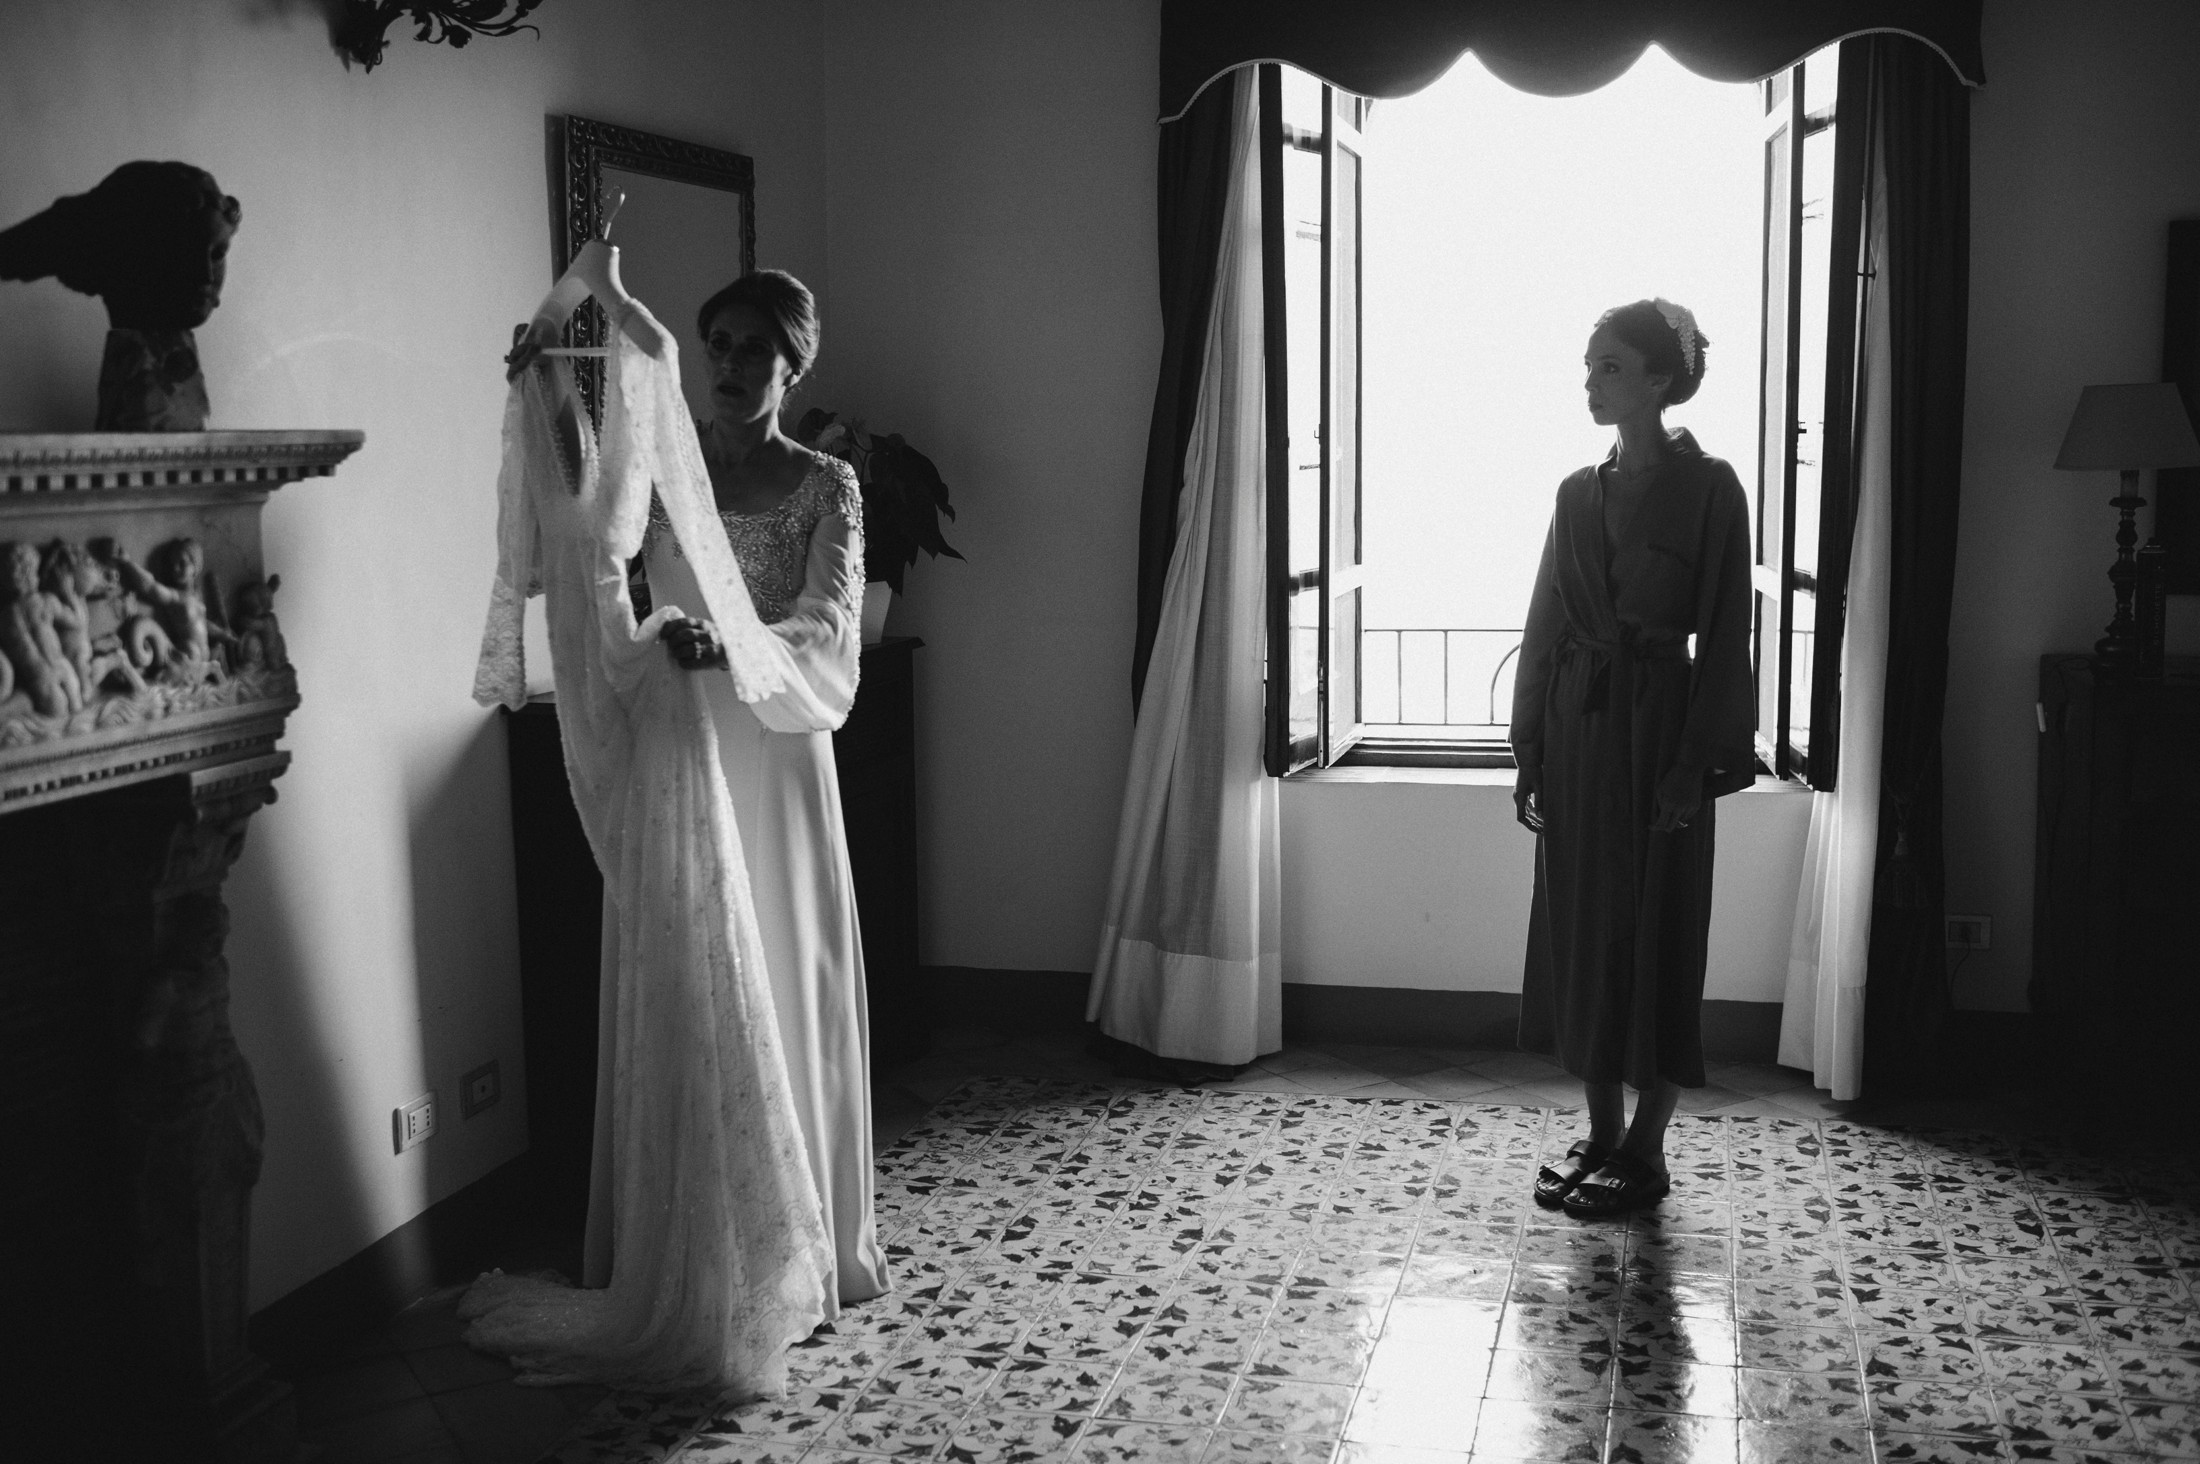 the mother gives the wedding dress to the bride